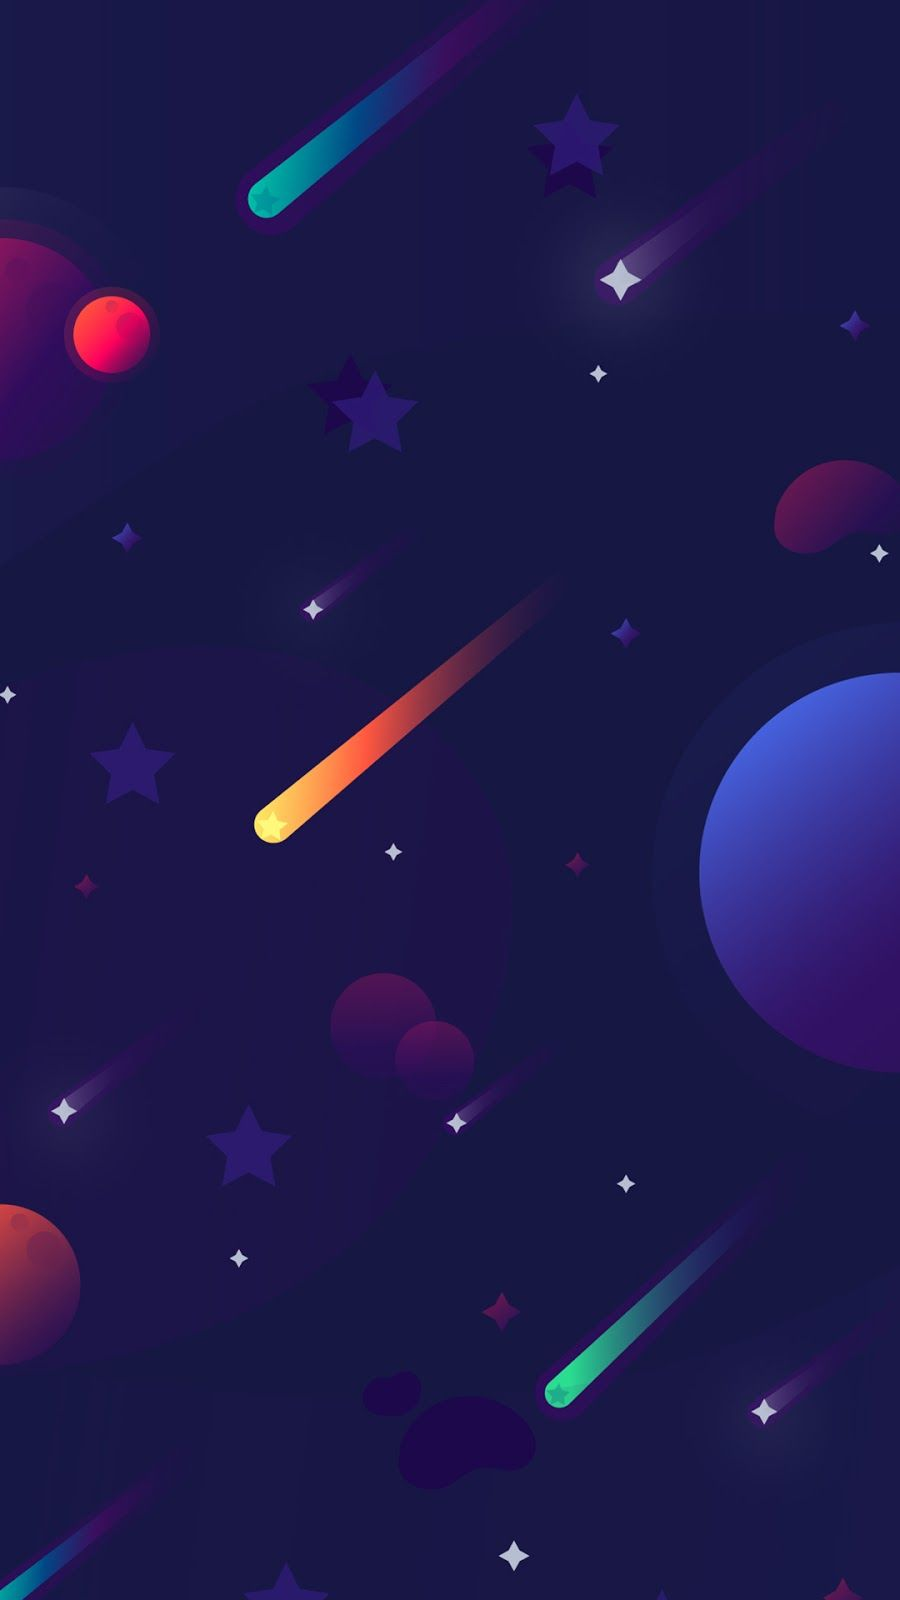 Space Minimalist Wallpaper : space, minimalist, wallpaper, Minimal, Space, Phone, Wallpapers, Wallpaper,, Wallpaper